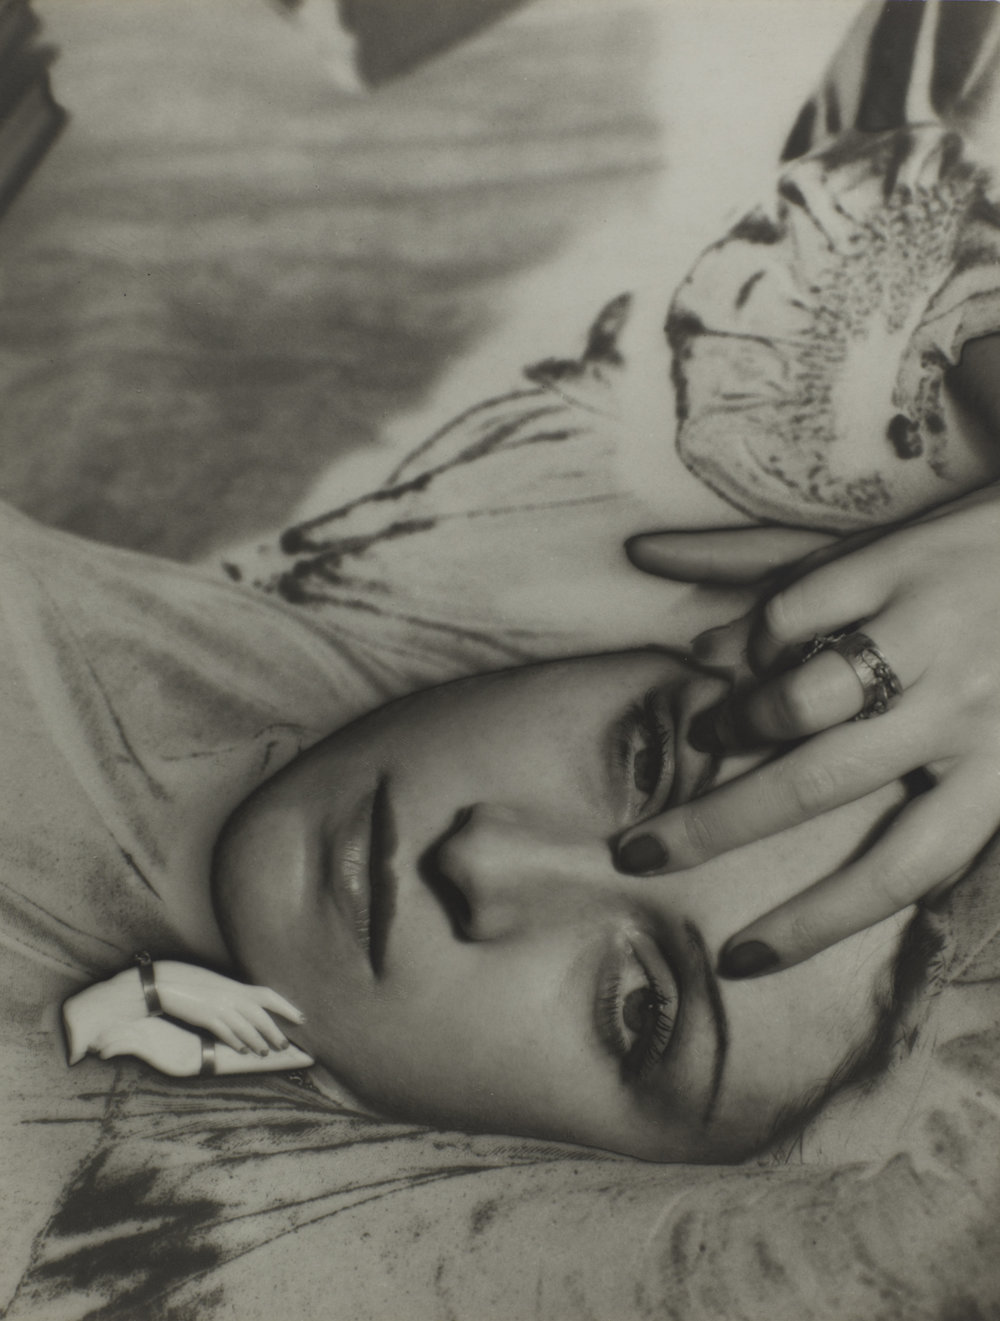 Man Ray 1890-1976, Dora Maar, 1936, Photograph, gelatin silver print on paper, 165 x 215 mm, The Sir Elton John Photography Collection, © Man Ray Trust/ADAGP, Paris and DACS, London 2016.